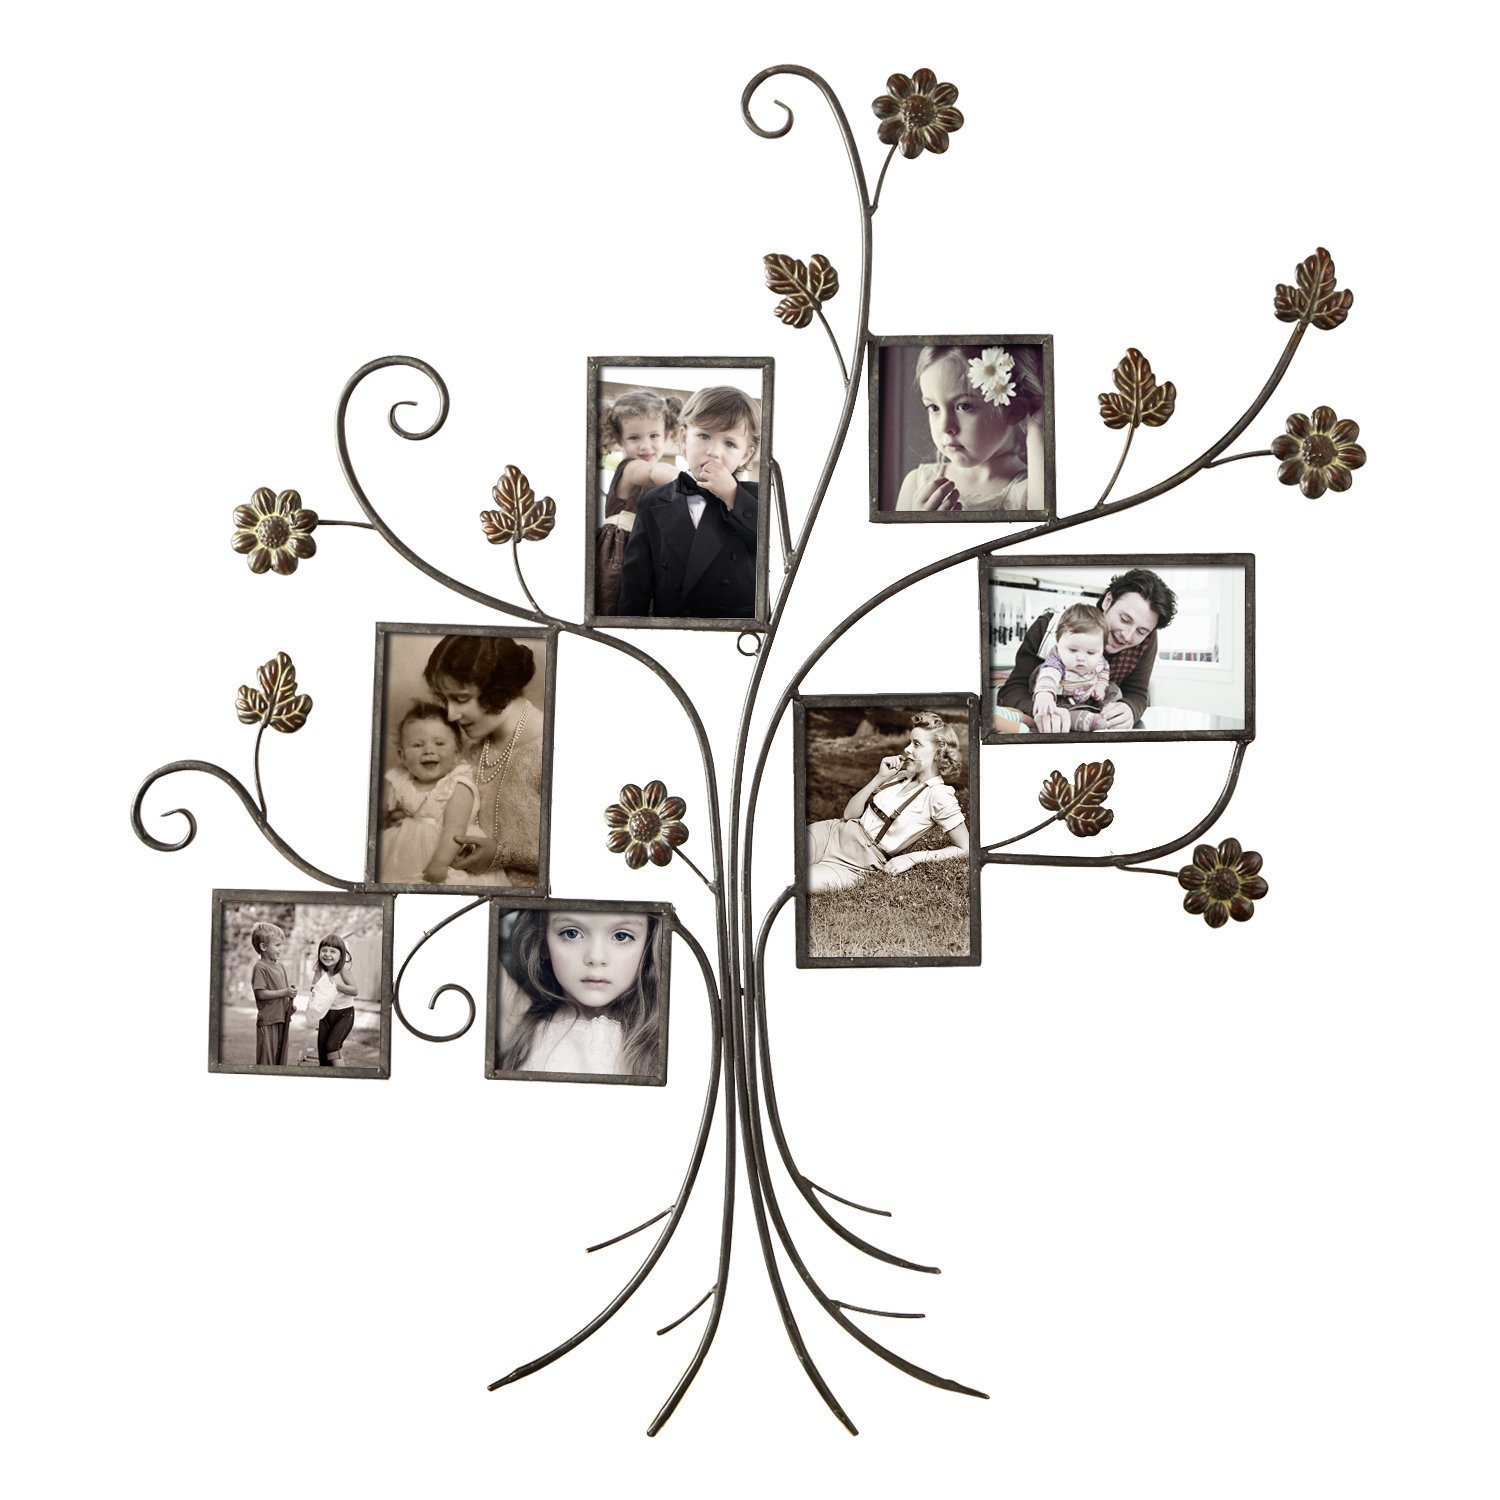 Adeco 7-opening Iron Collage Wall-hanging Photo Frame (Br...